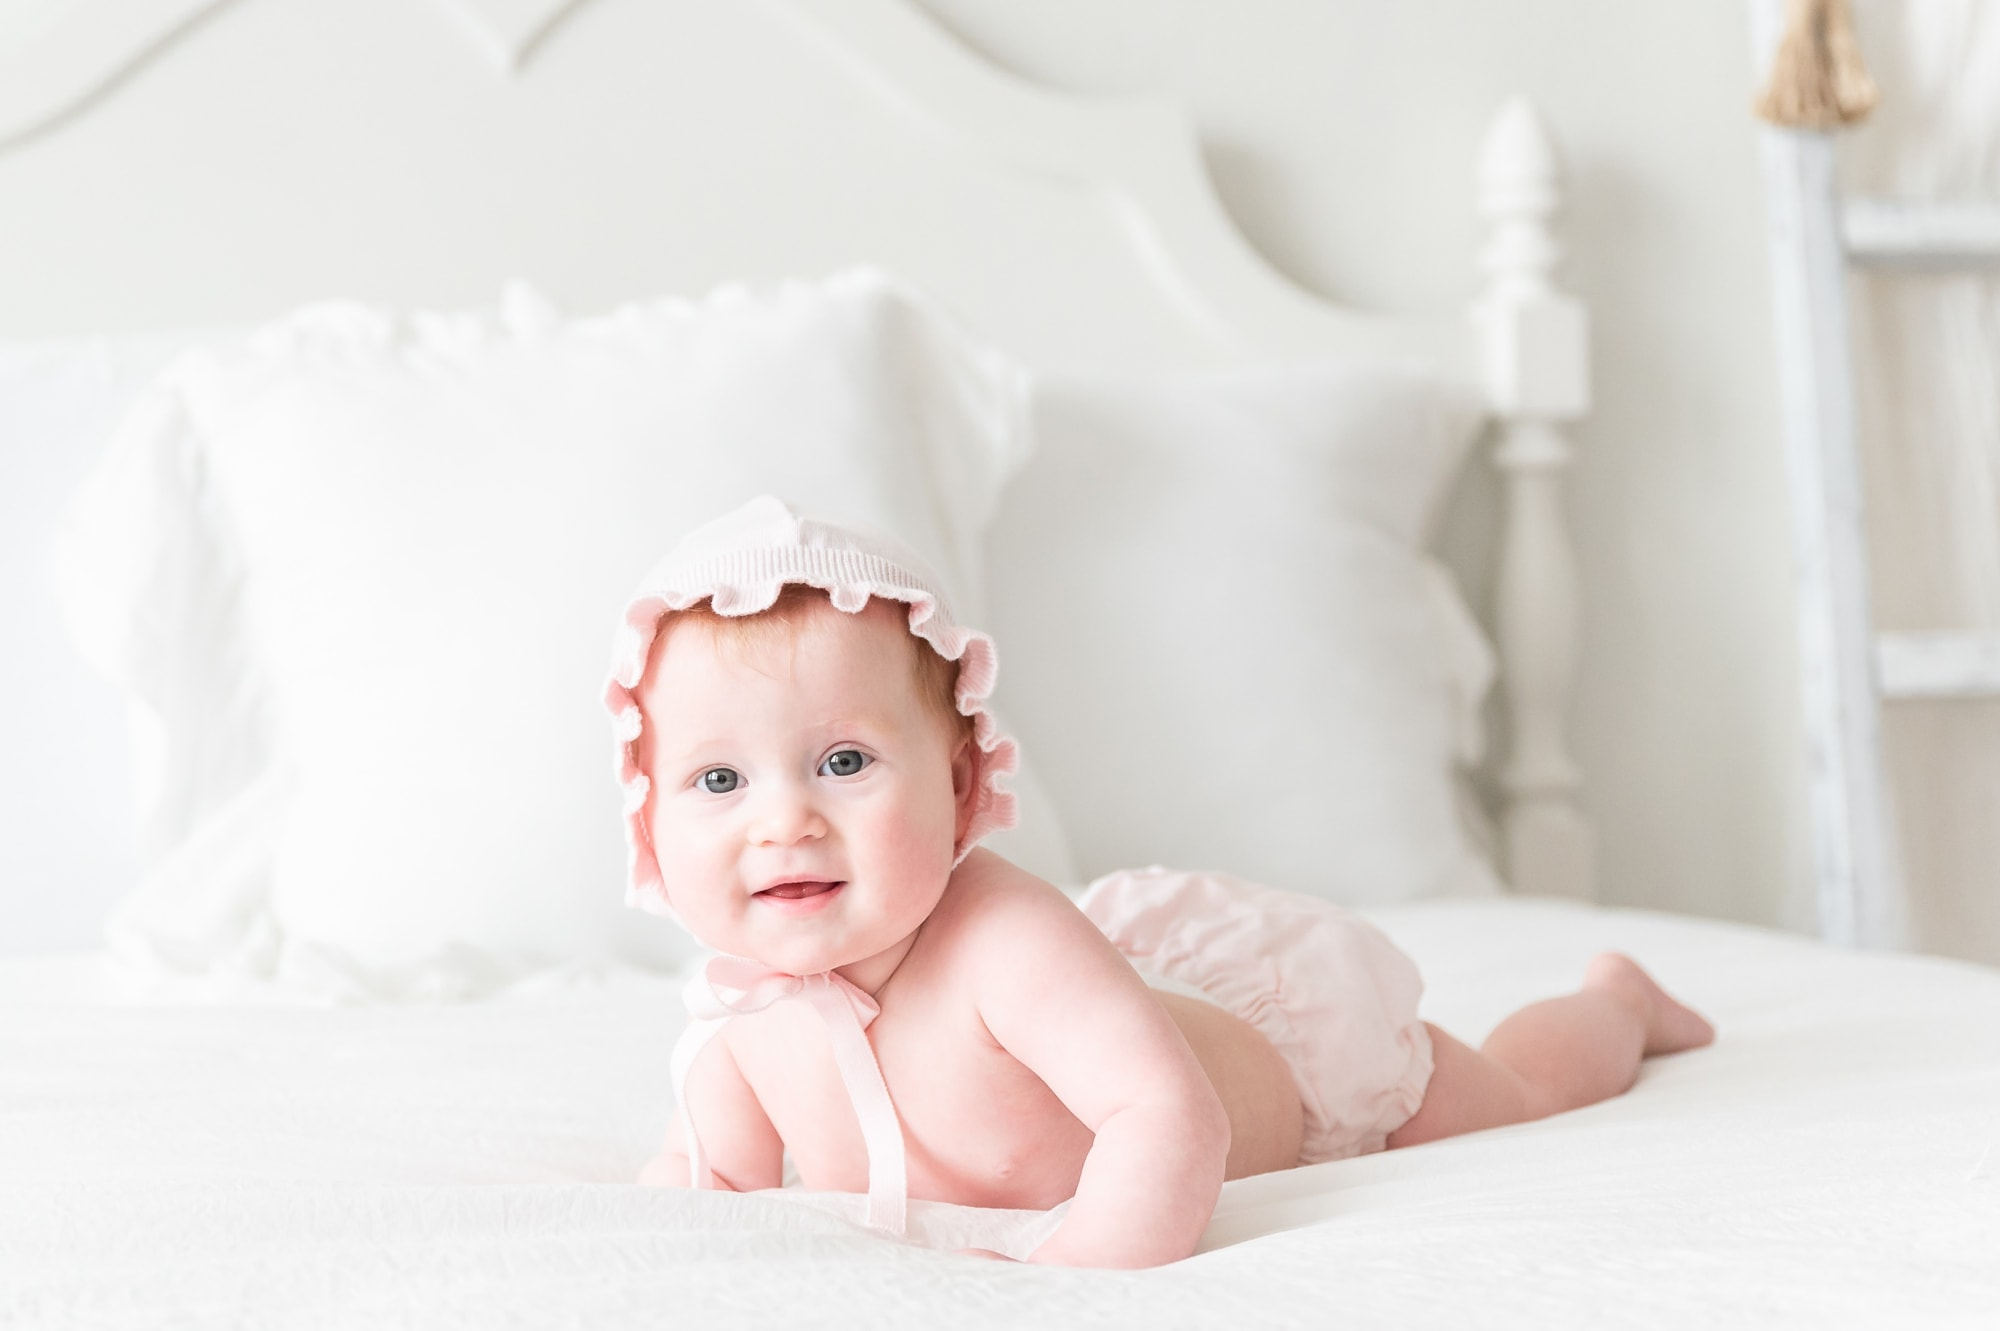 Baby girl wearing bonnet and diaper cover on bed in studio during milestone session. Photo by Aimee Hamilton Photography